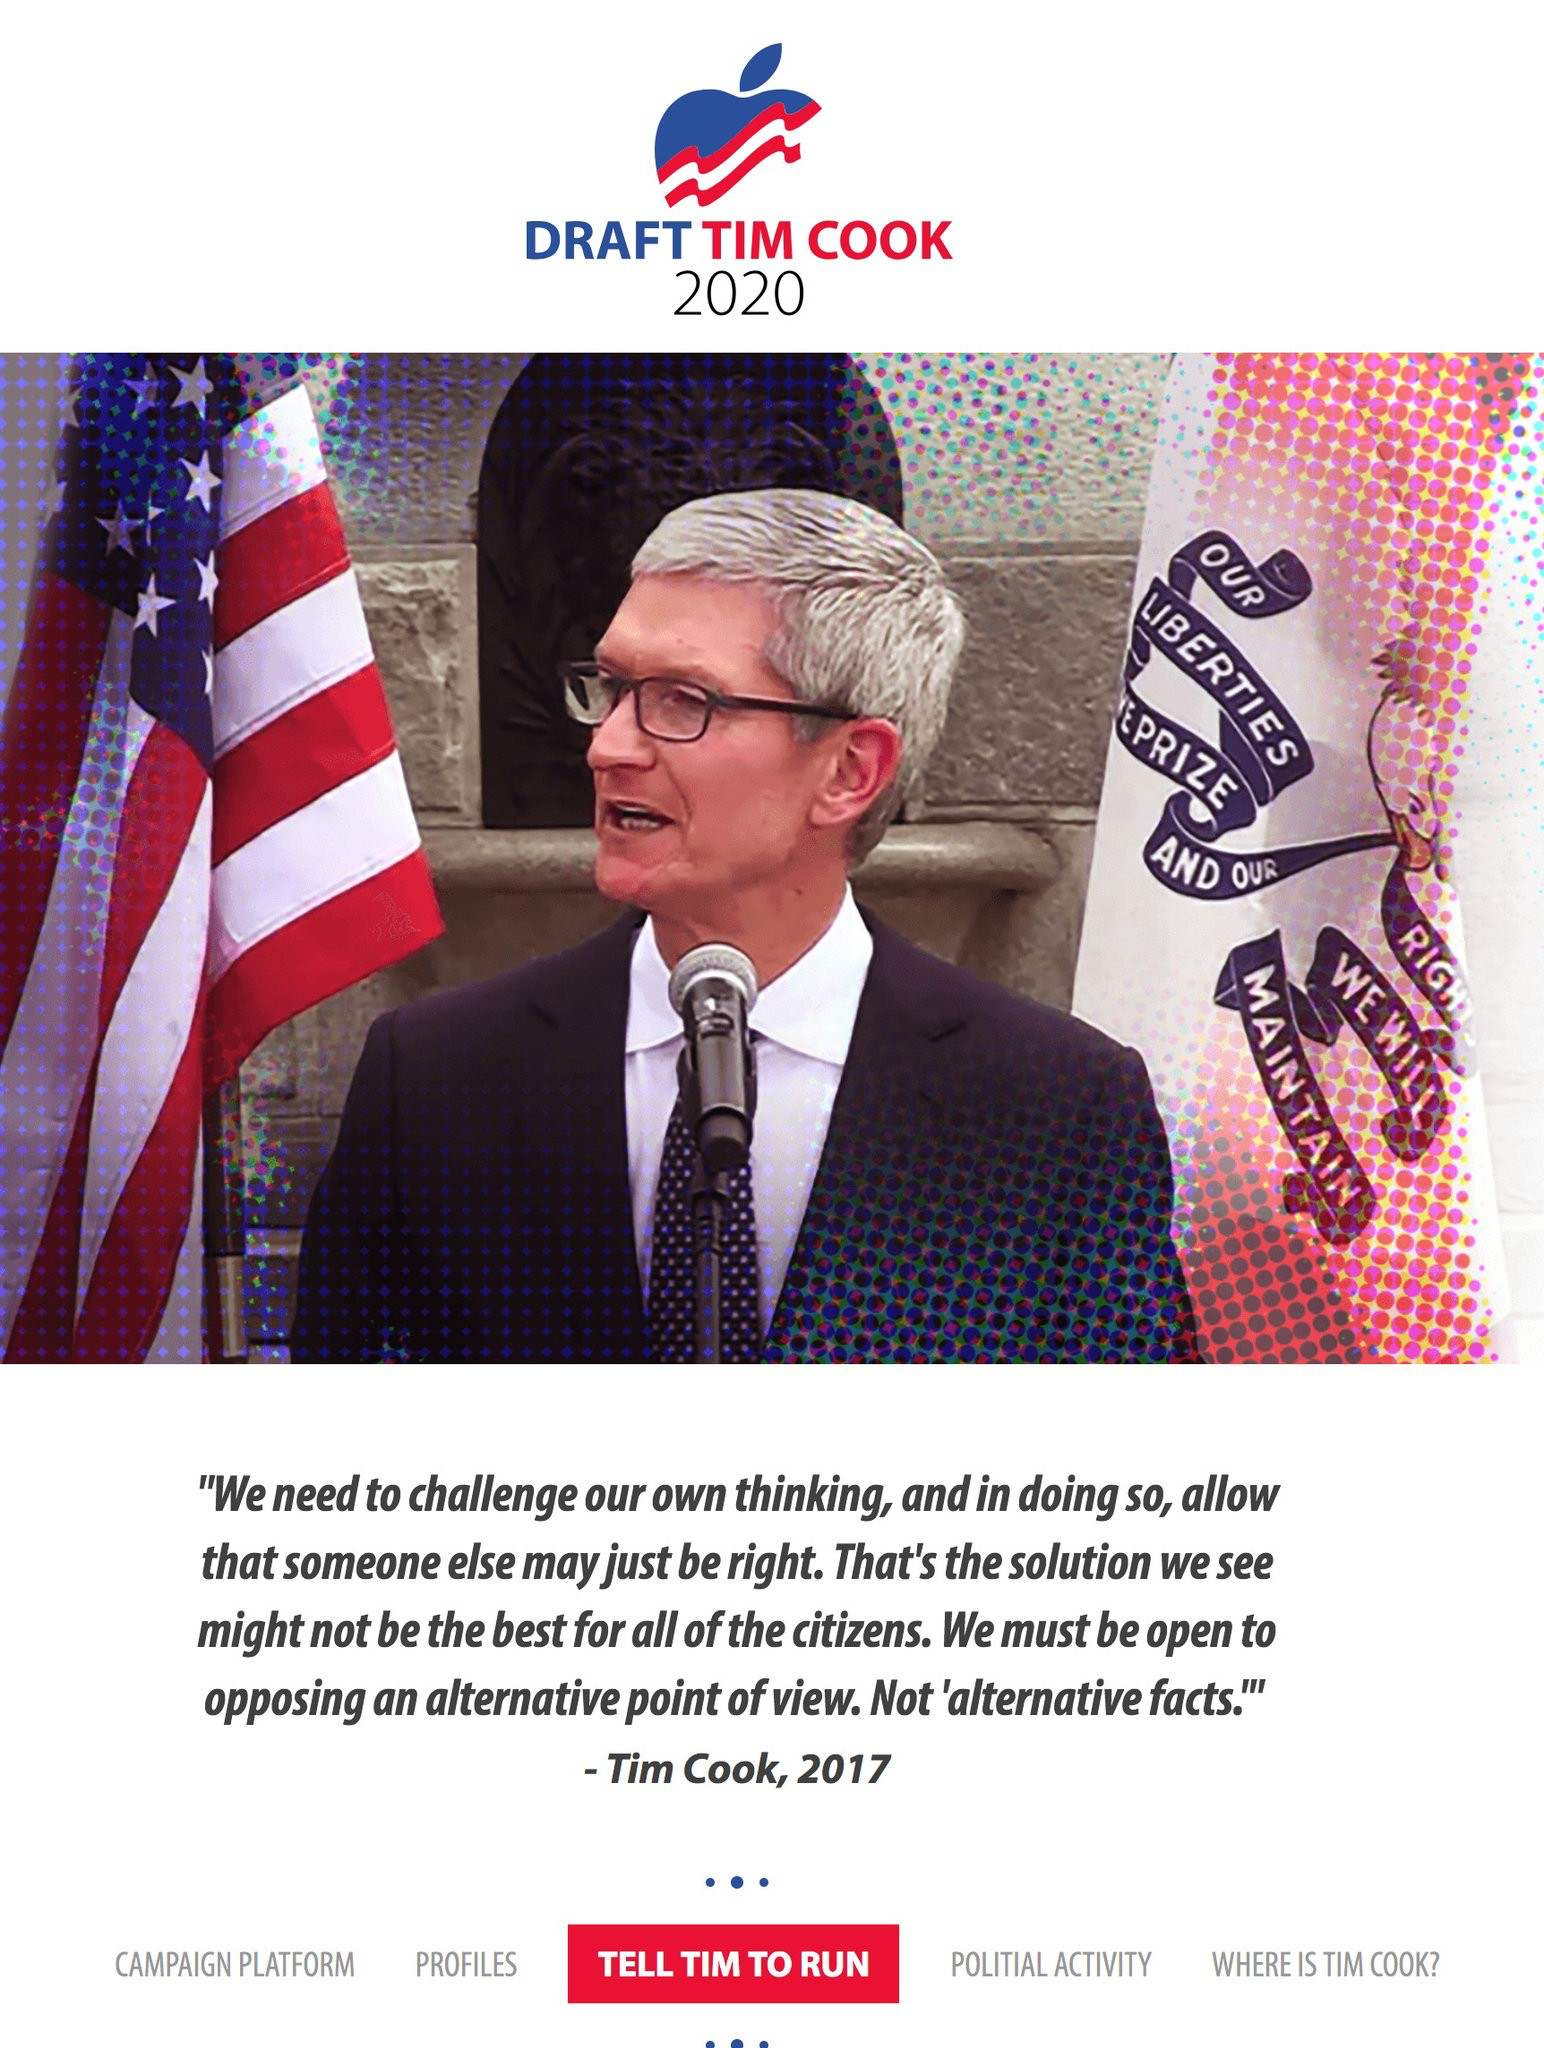 Draft Tim Cook